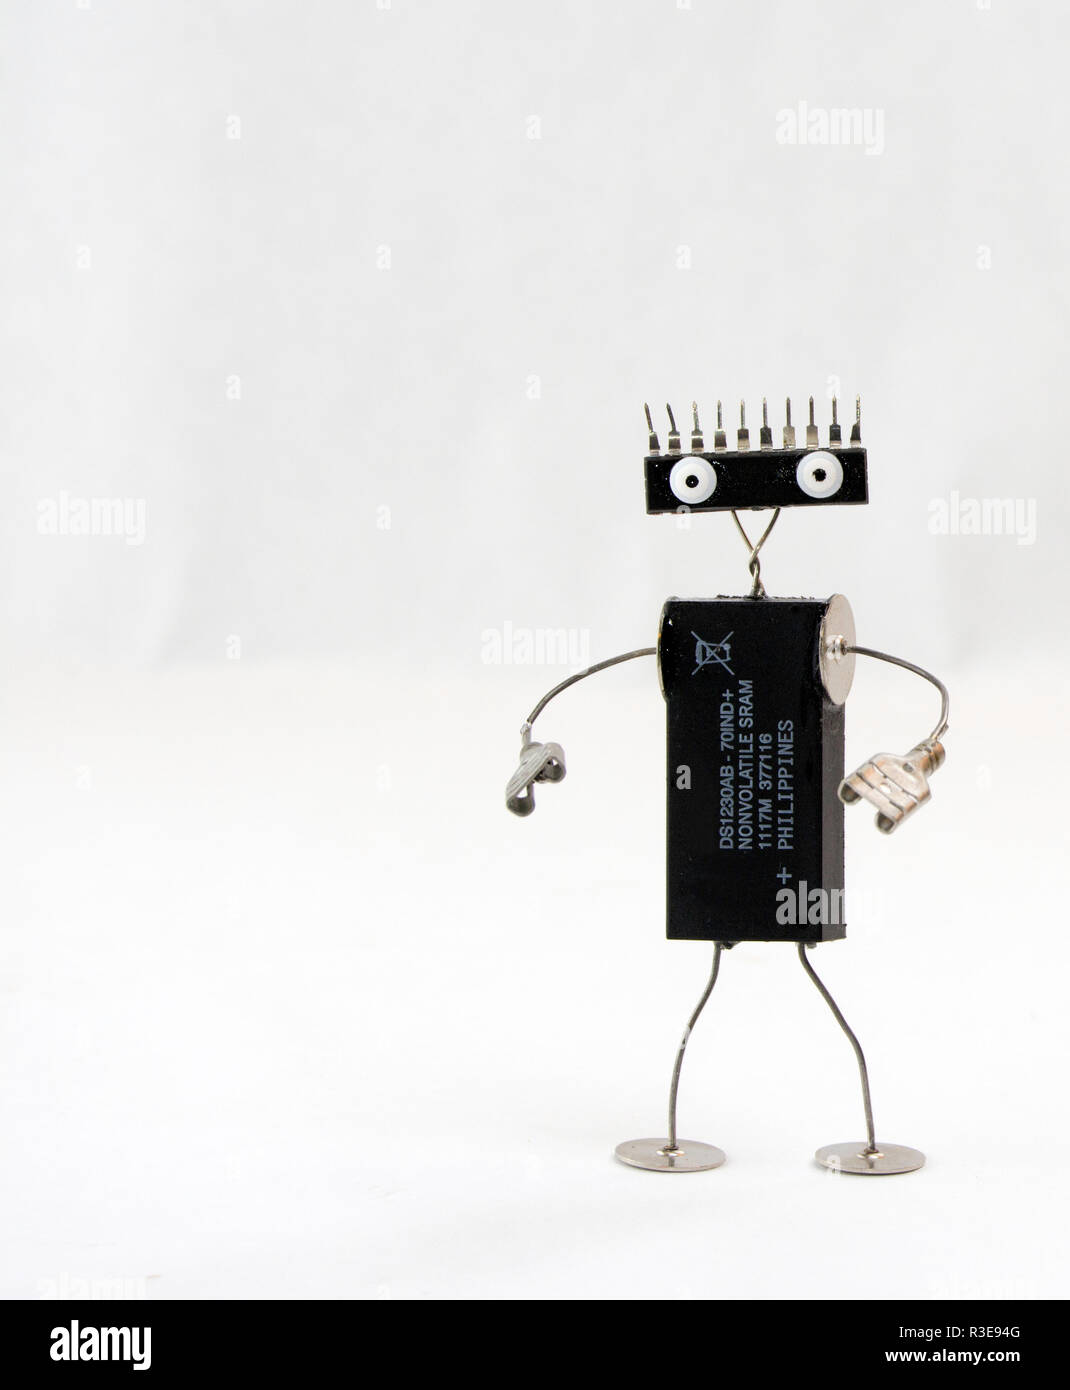 robot character made from computer chips - Stock Image